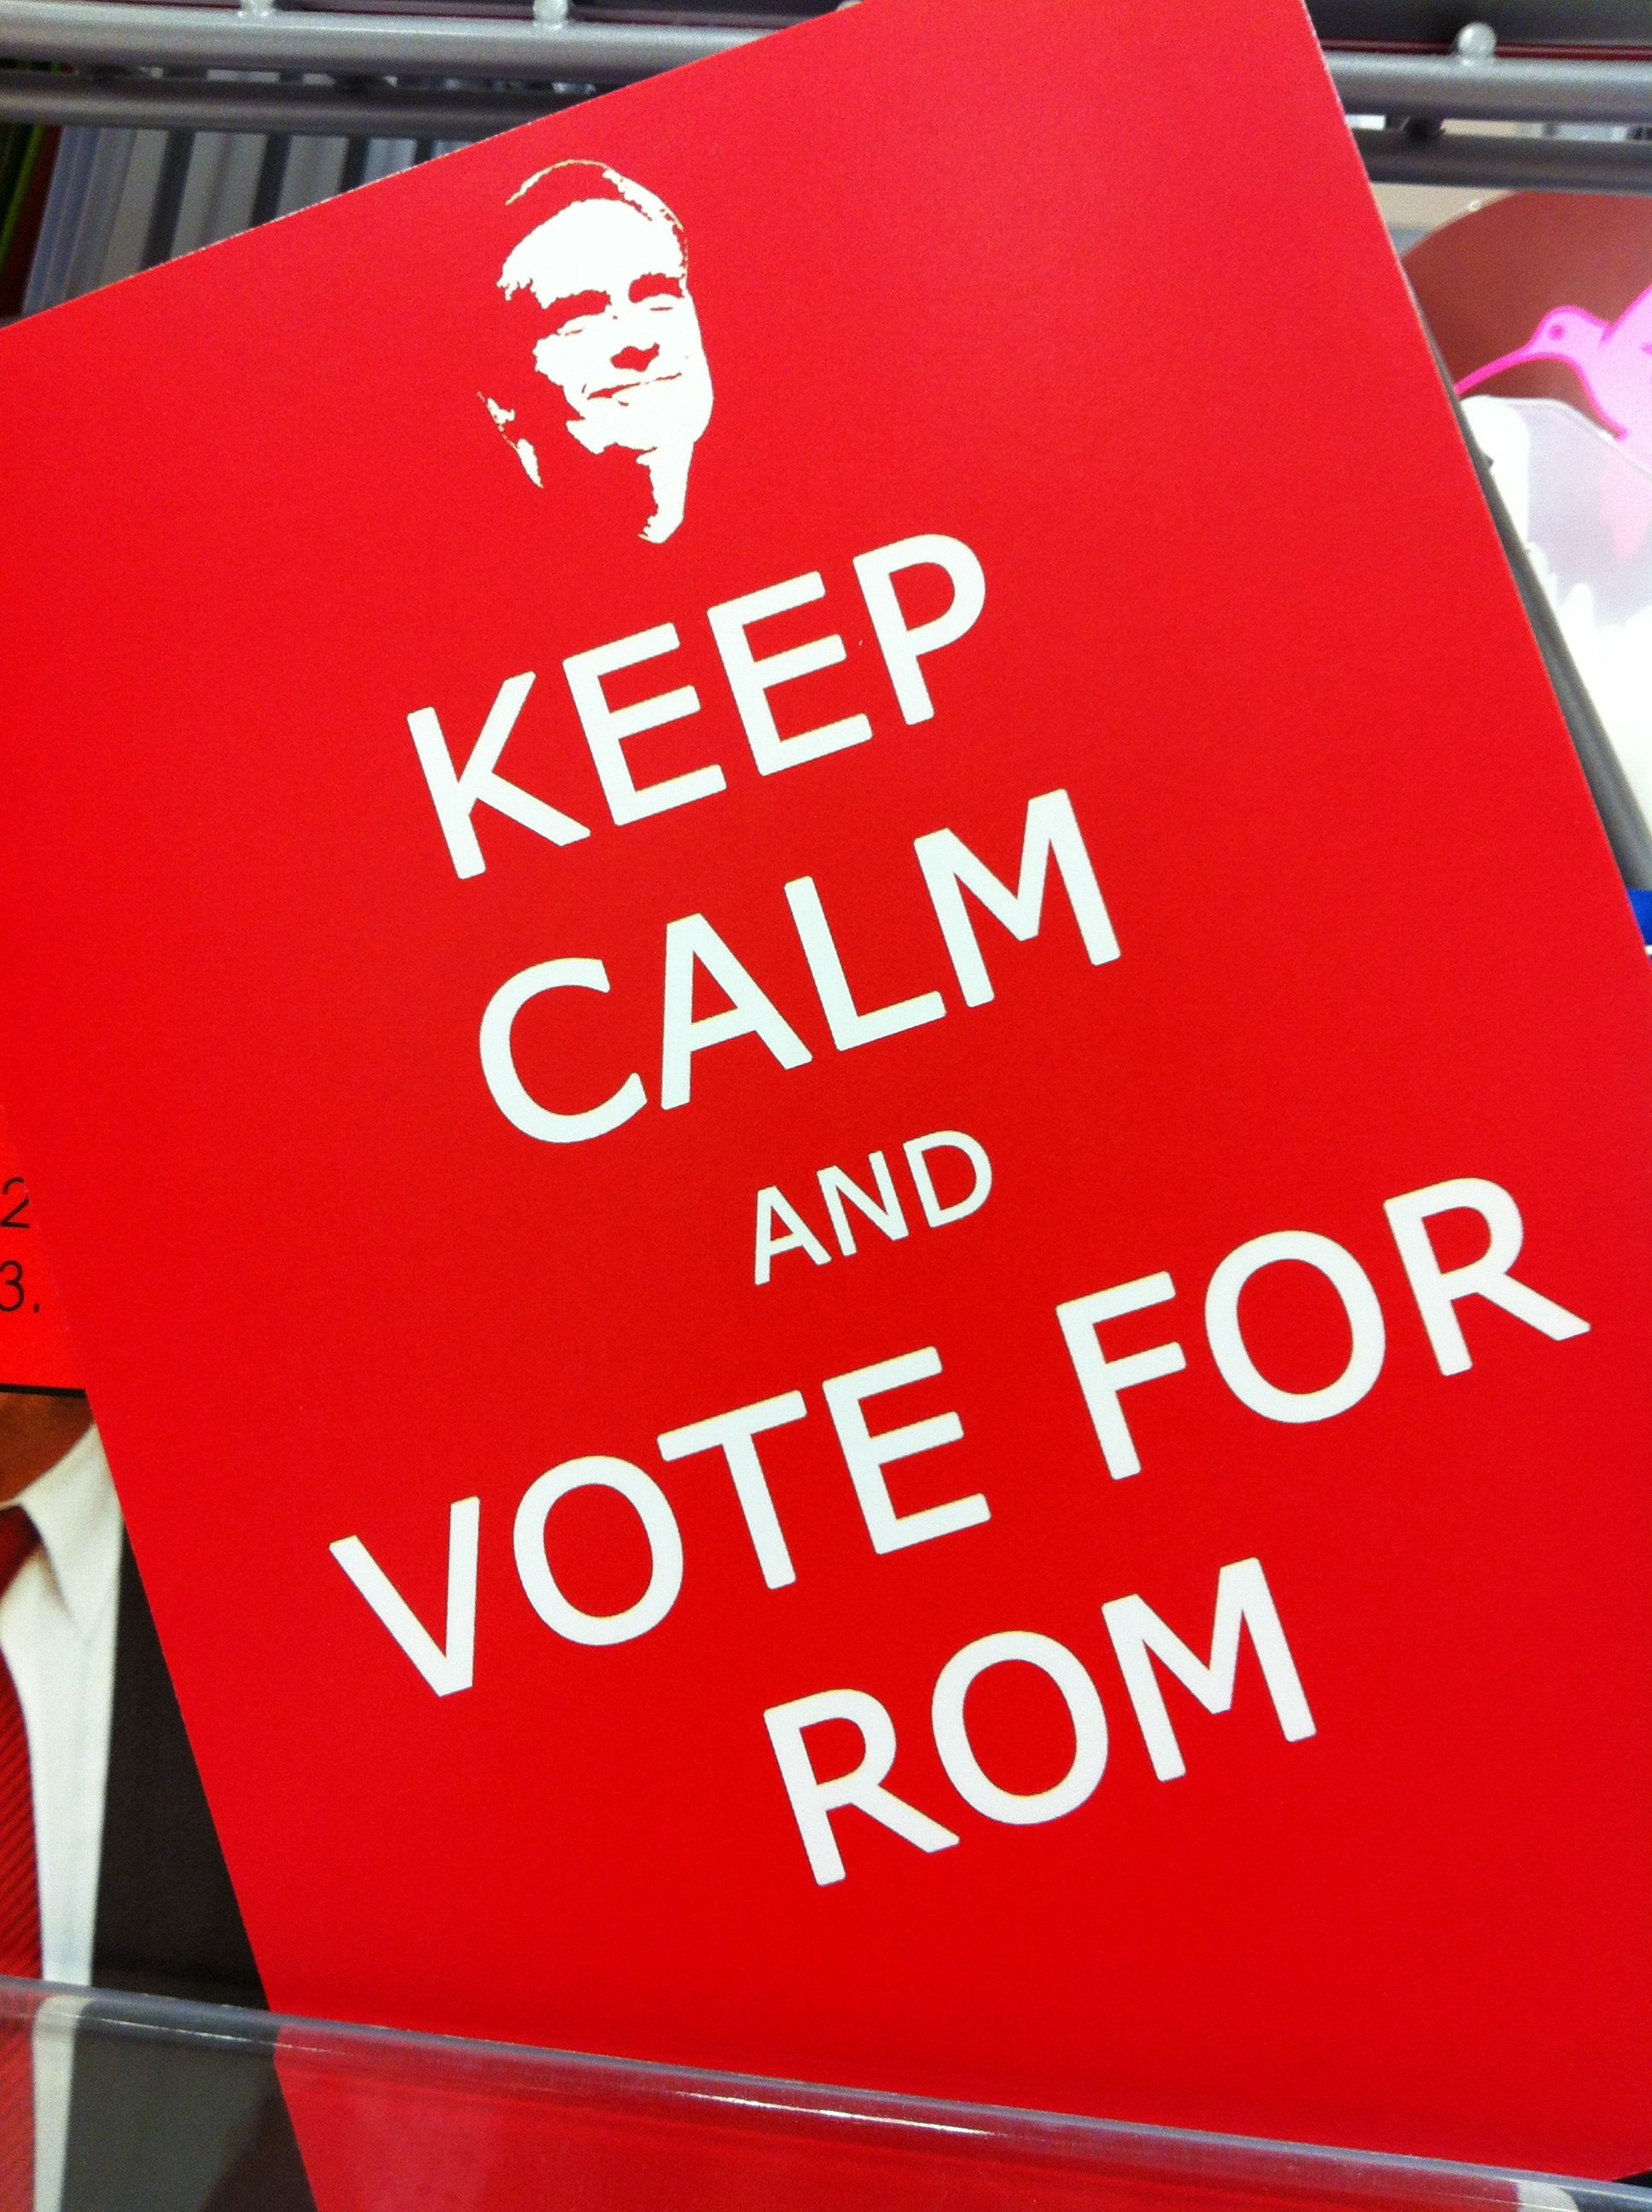 keep calm and vote for rom